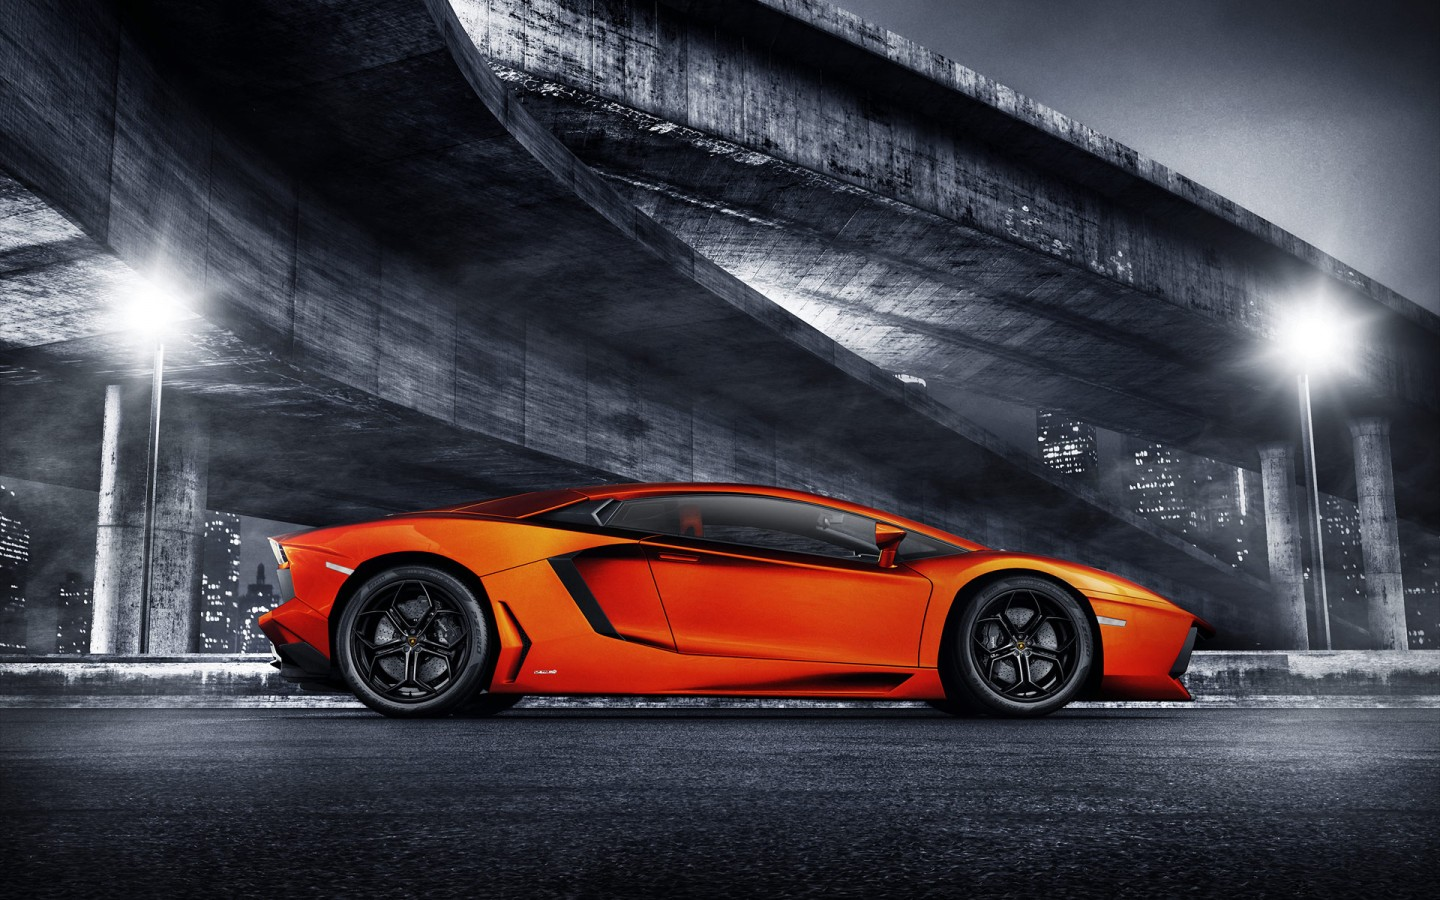 Orange Lamborghini Aventador Wallpaper